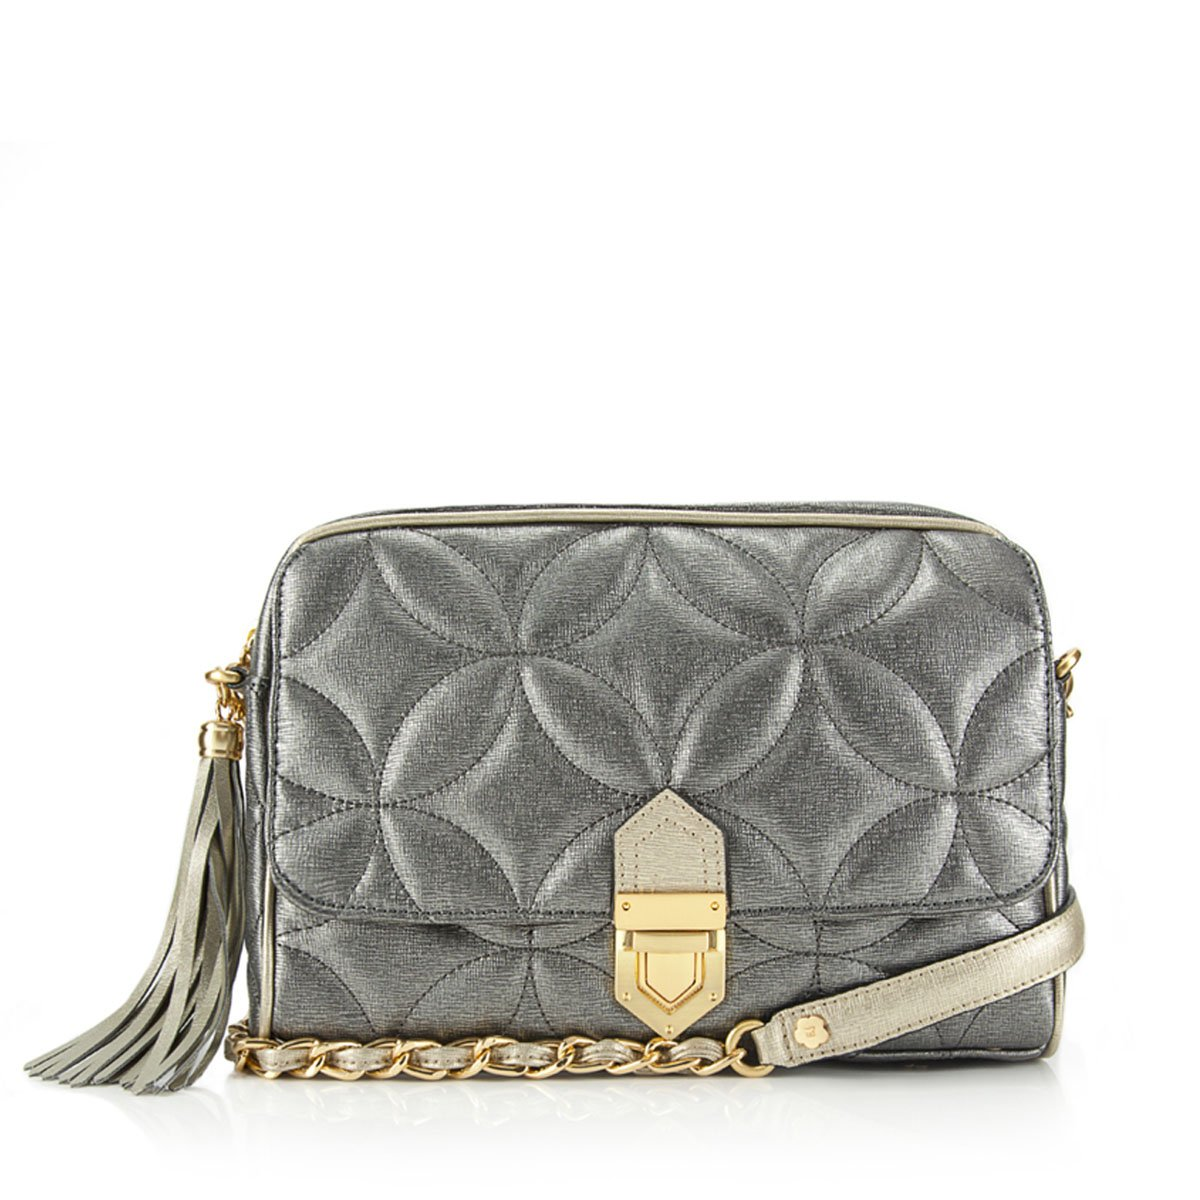 Eric Javits Designer Women's Handbags Dance Zip Pouch - Pewter/Gold